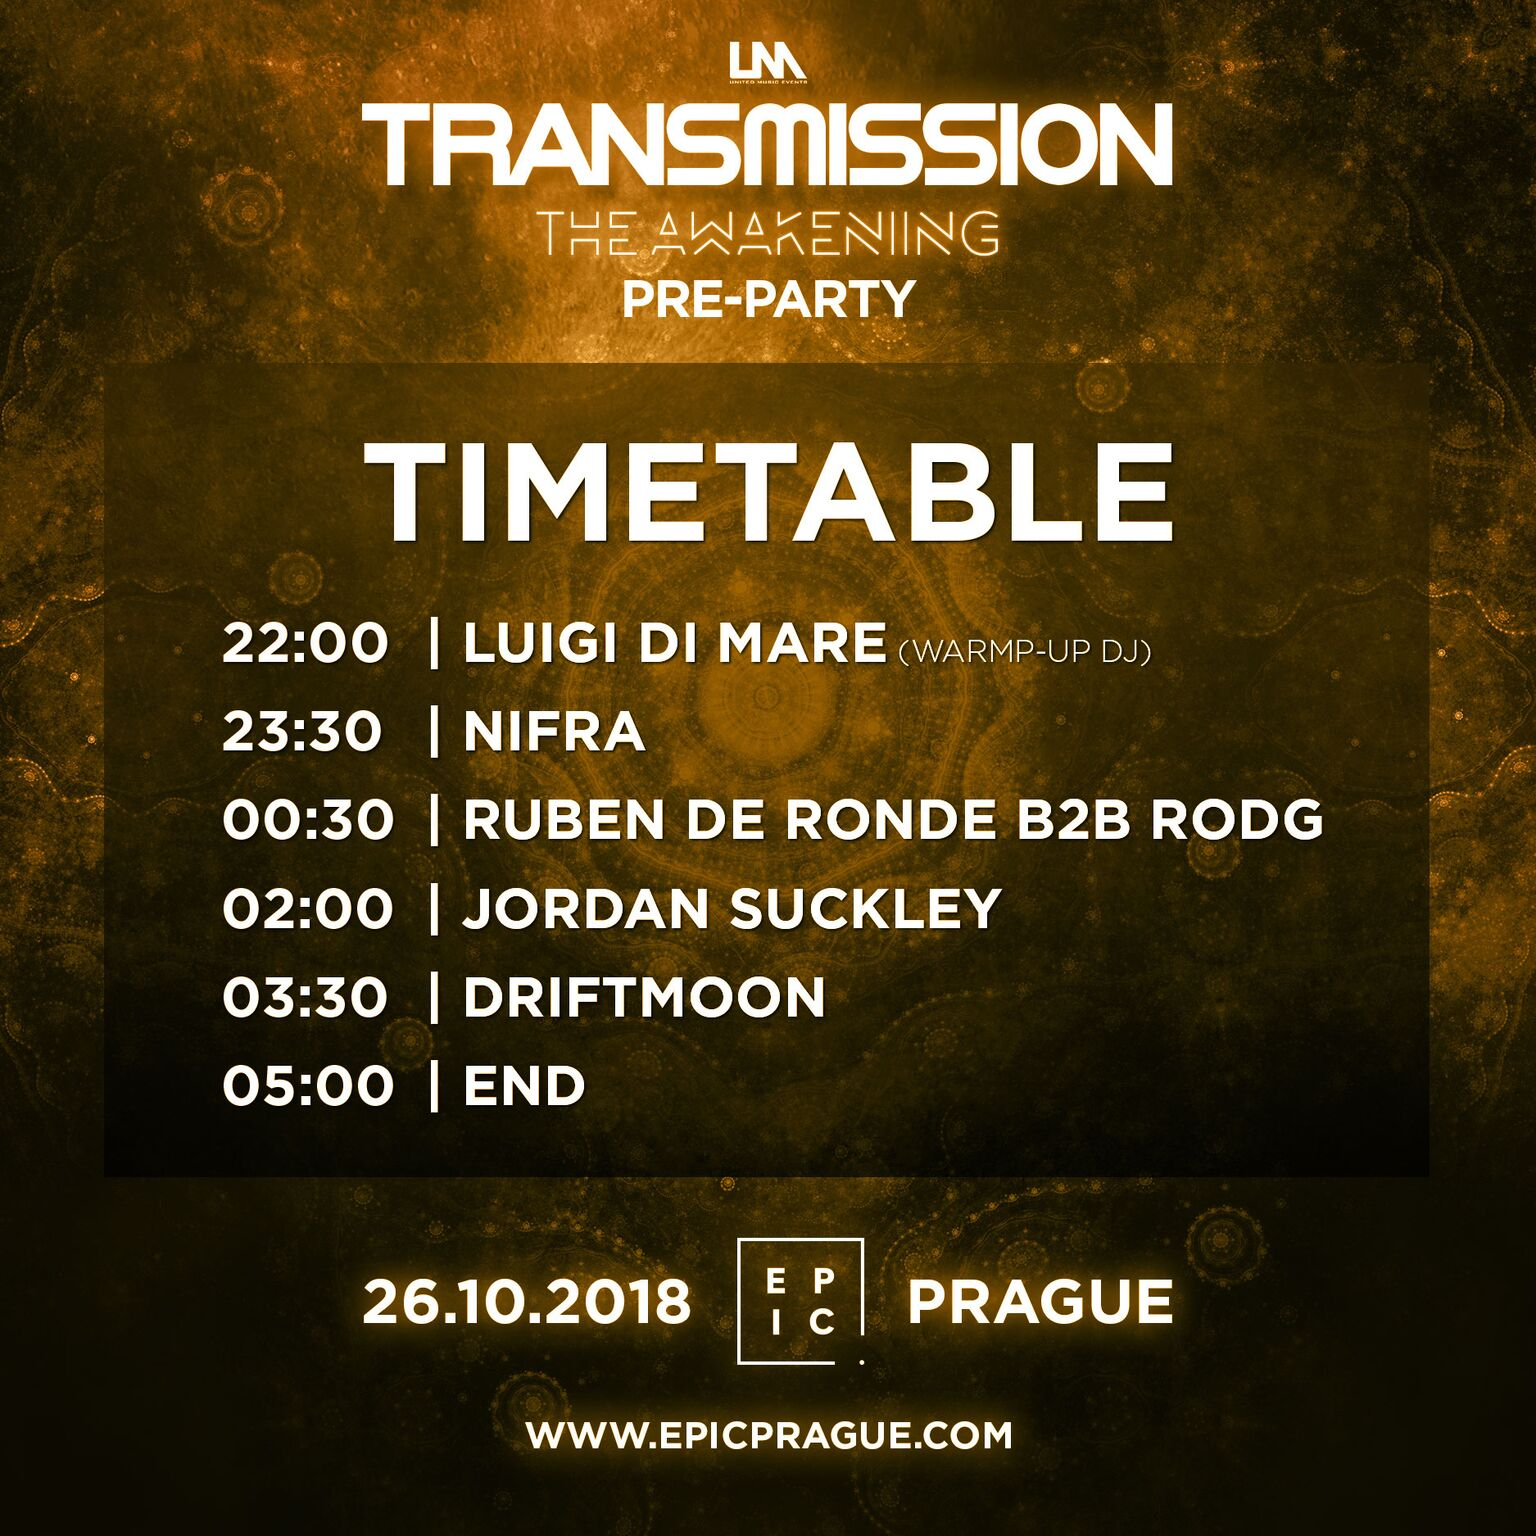 timetablepreparty